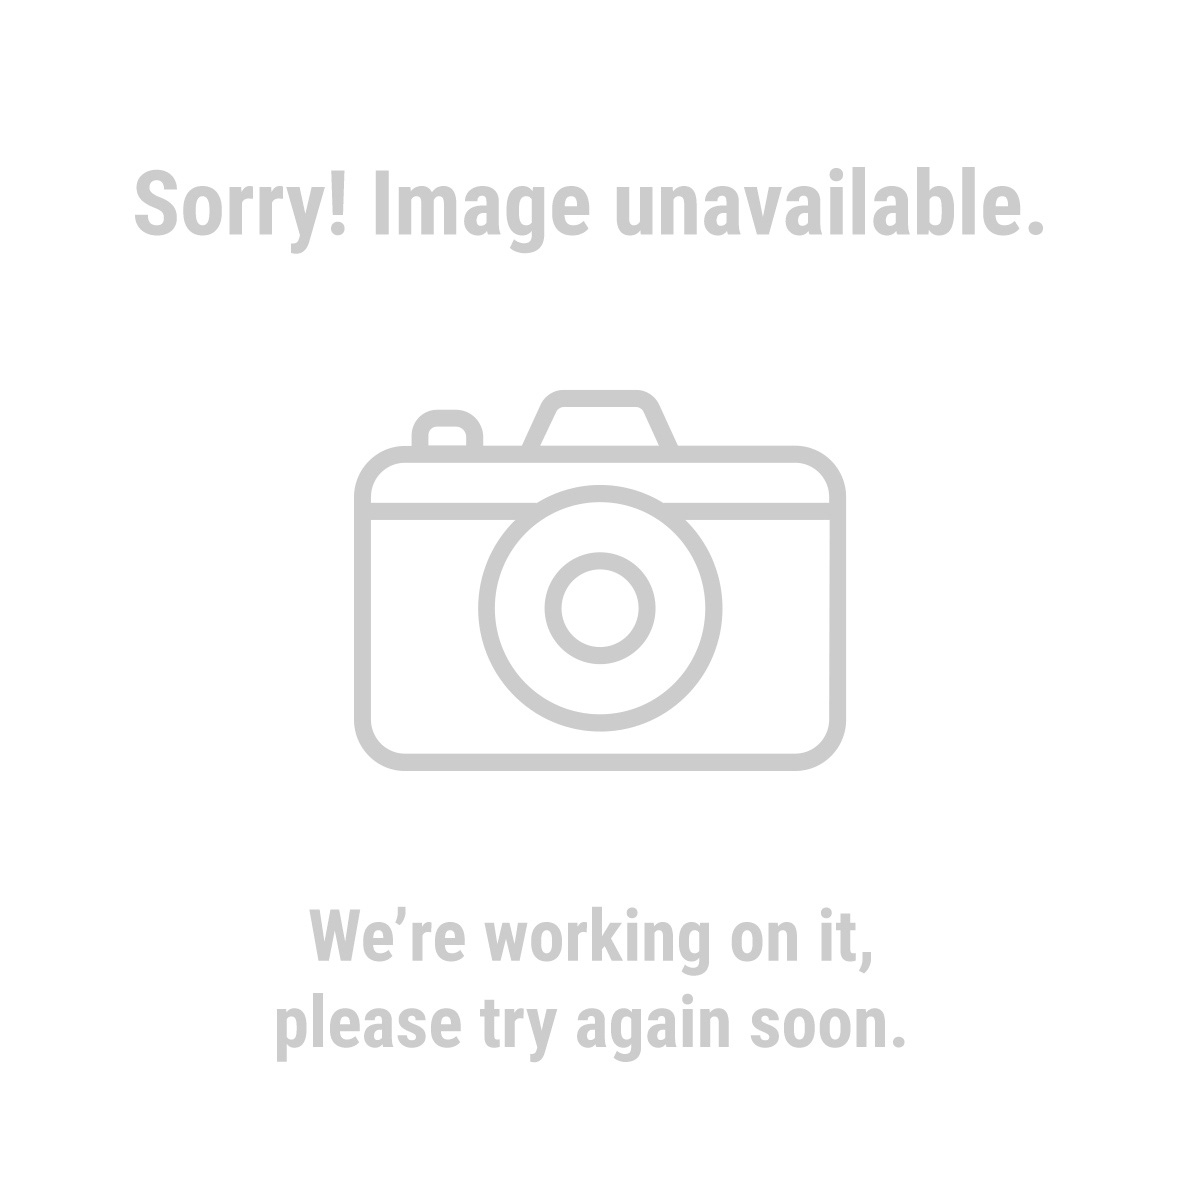 HFT 60468 19 ft. x 29 ft. 4 in. All Purpose Weather Resistant Tarp